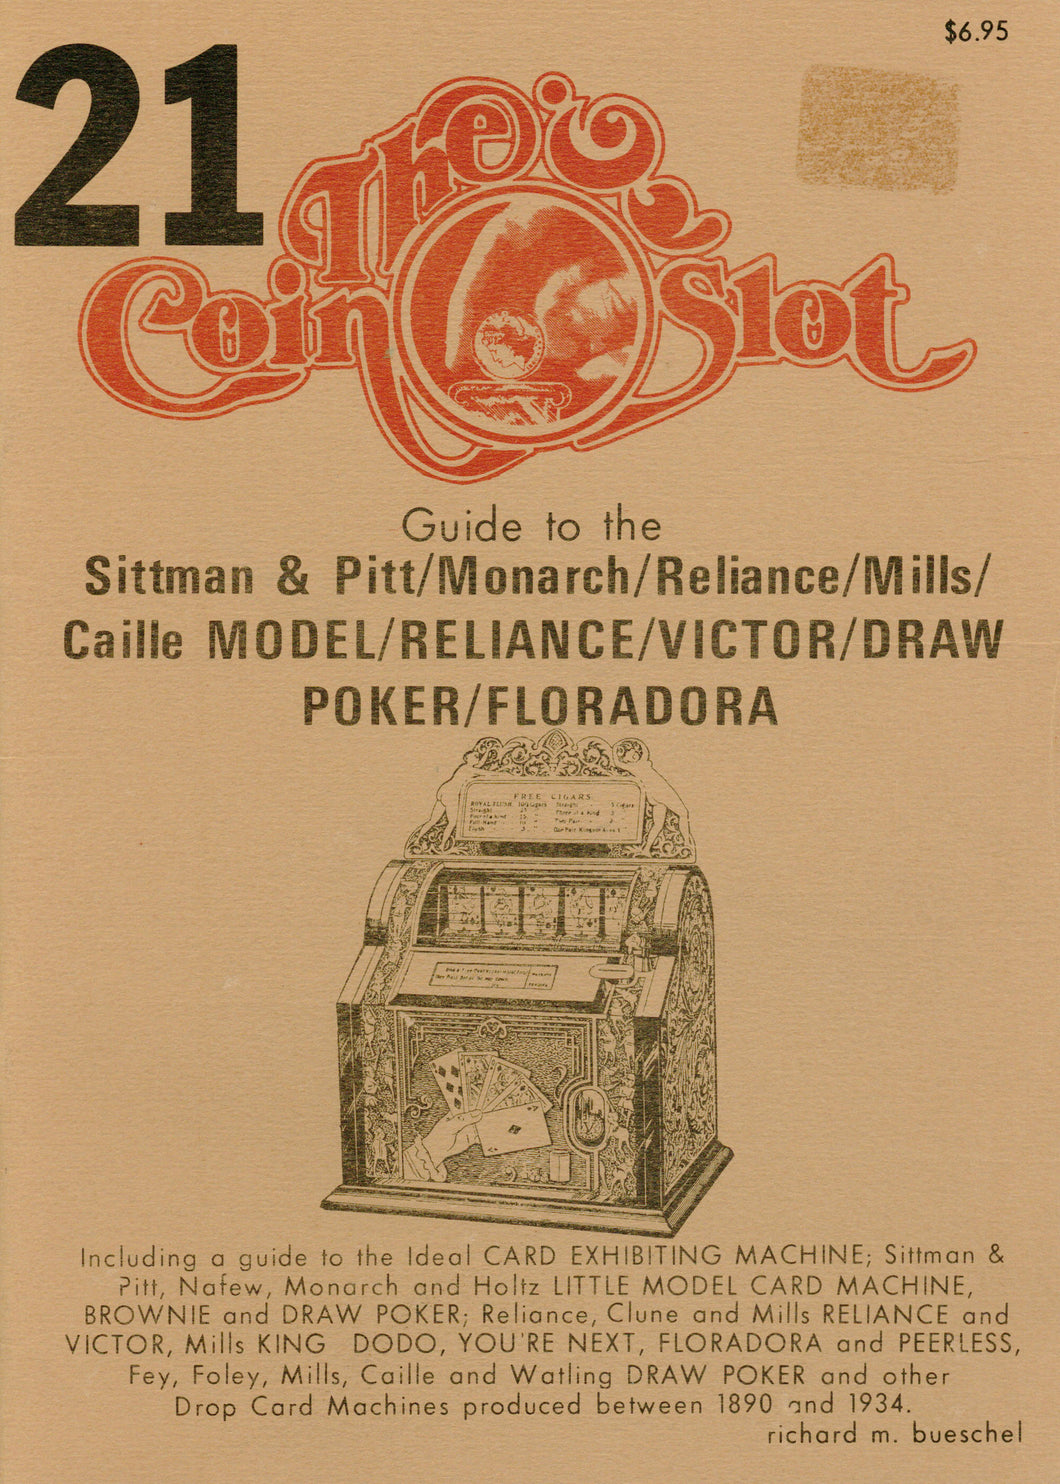 Coin Slot #21. Guide to the Sittman & Pitt/Monarch/Reliance/Mills/Caille Model/Reliance/Victor/Draw Poker/Floradora